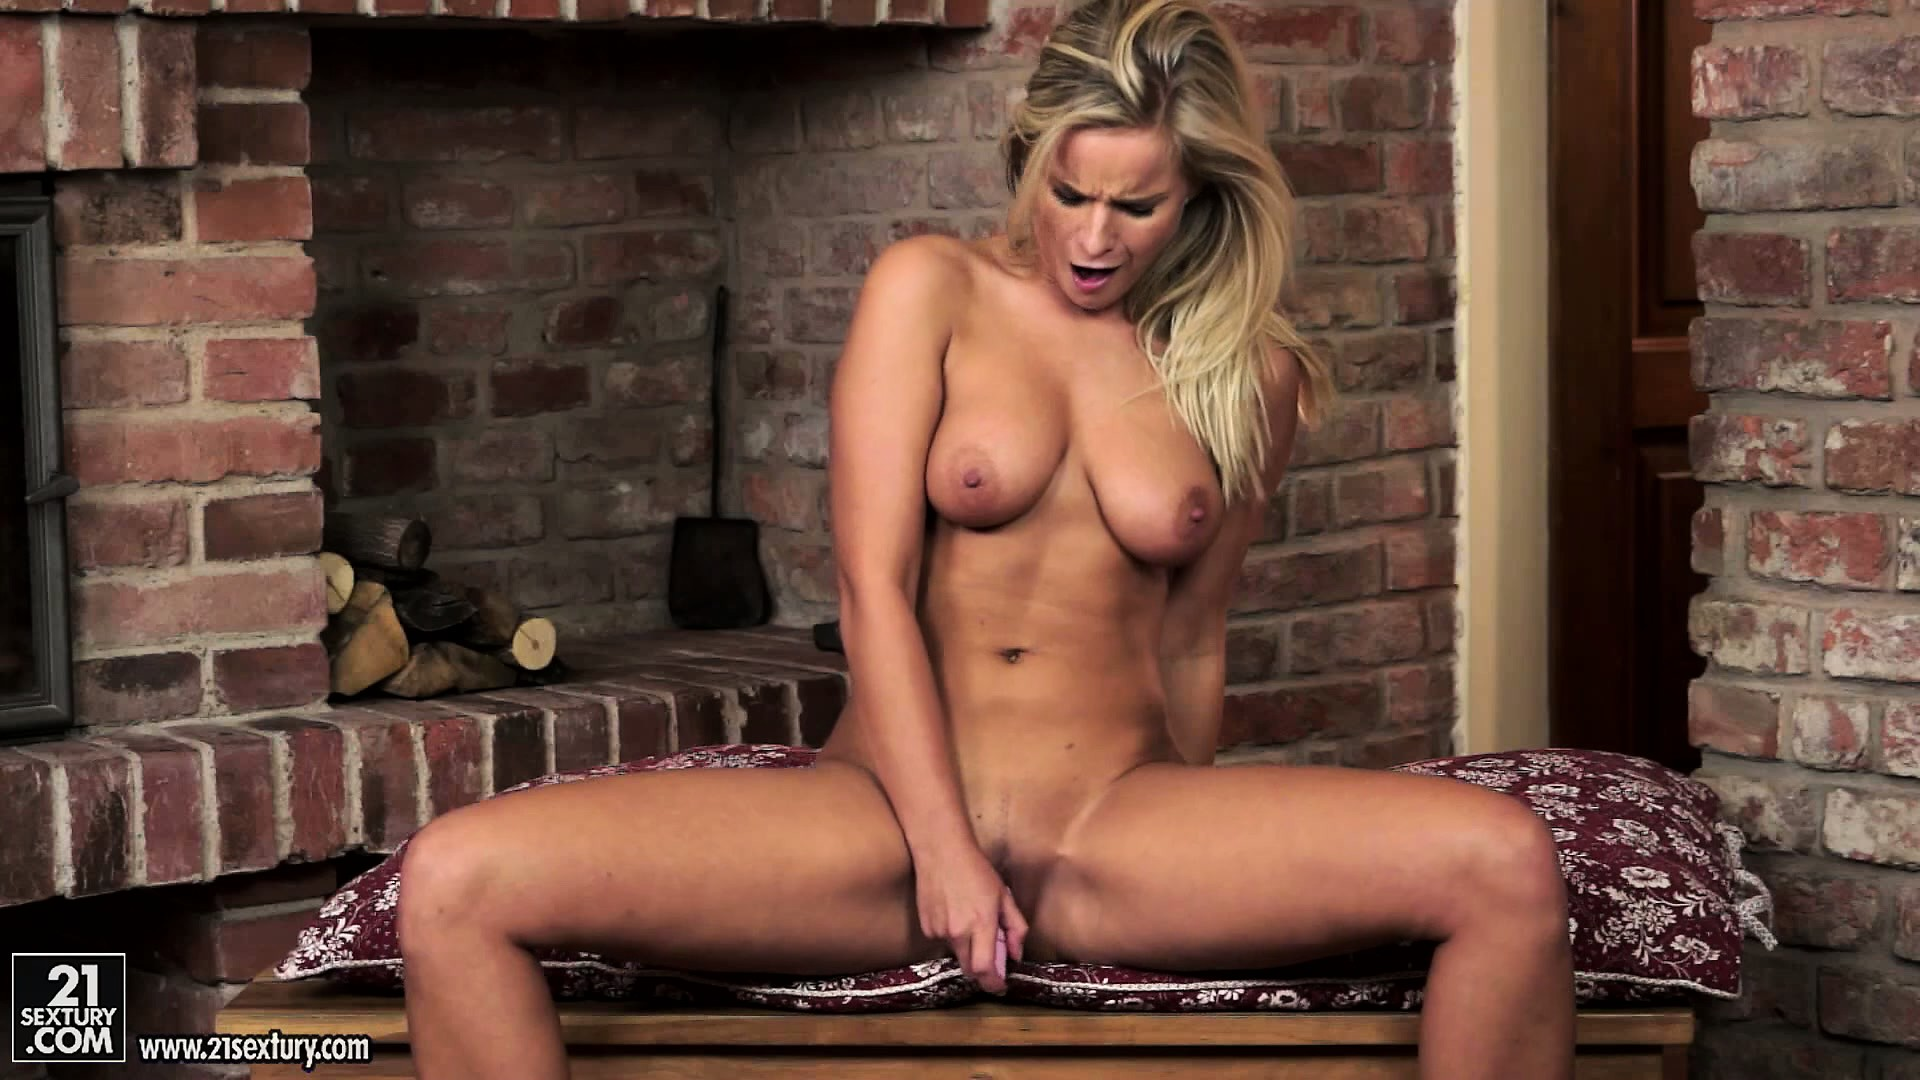 Porno Video of Busty Blonde Hottie Fingers Her Snatch And Then Shoves In A Toy